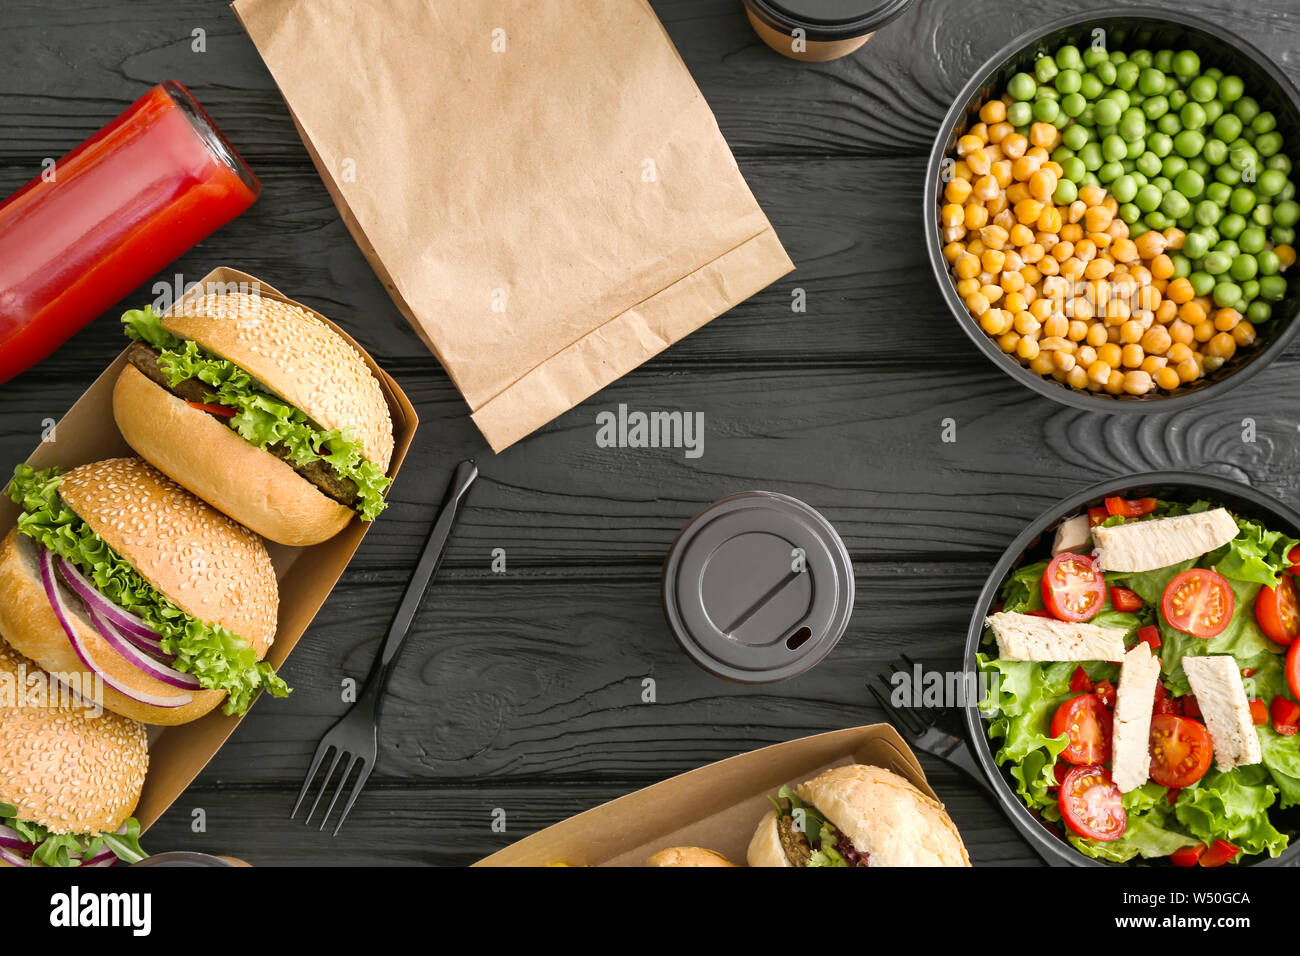 Takeaway Food Delivery Stock Photos & Takeaway Food Delivery